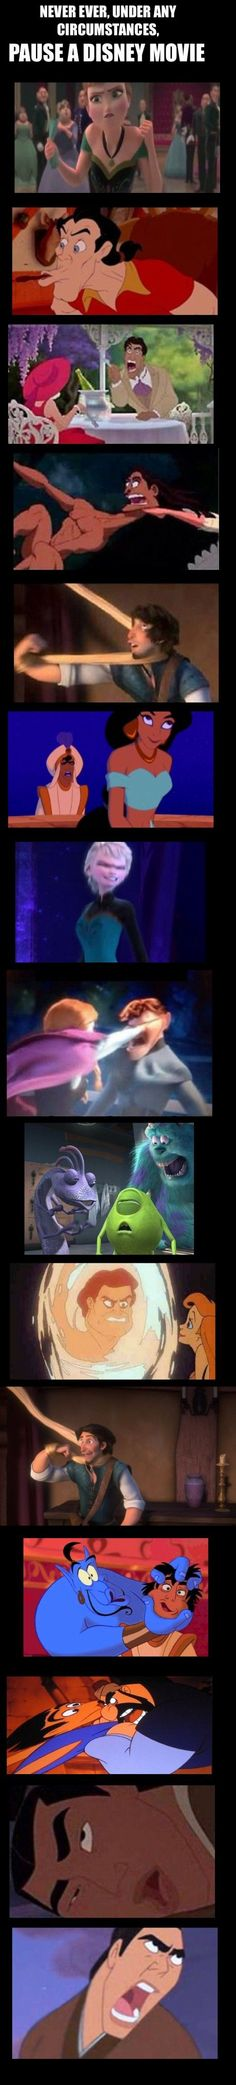 ALWAYS, under every circumstances, pause a Disney movie.: